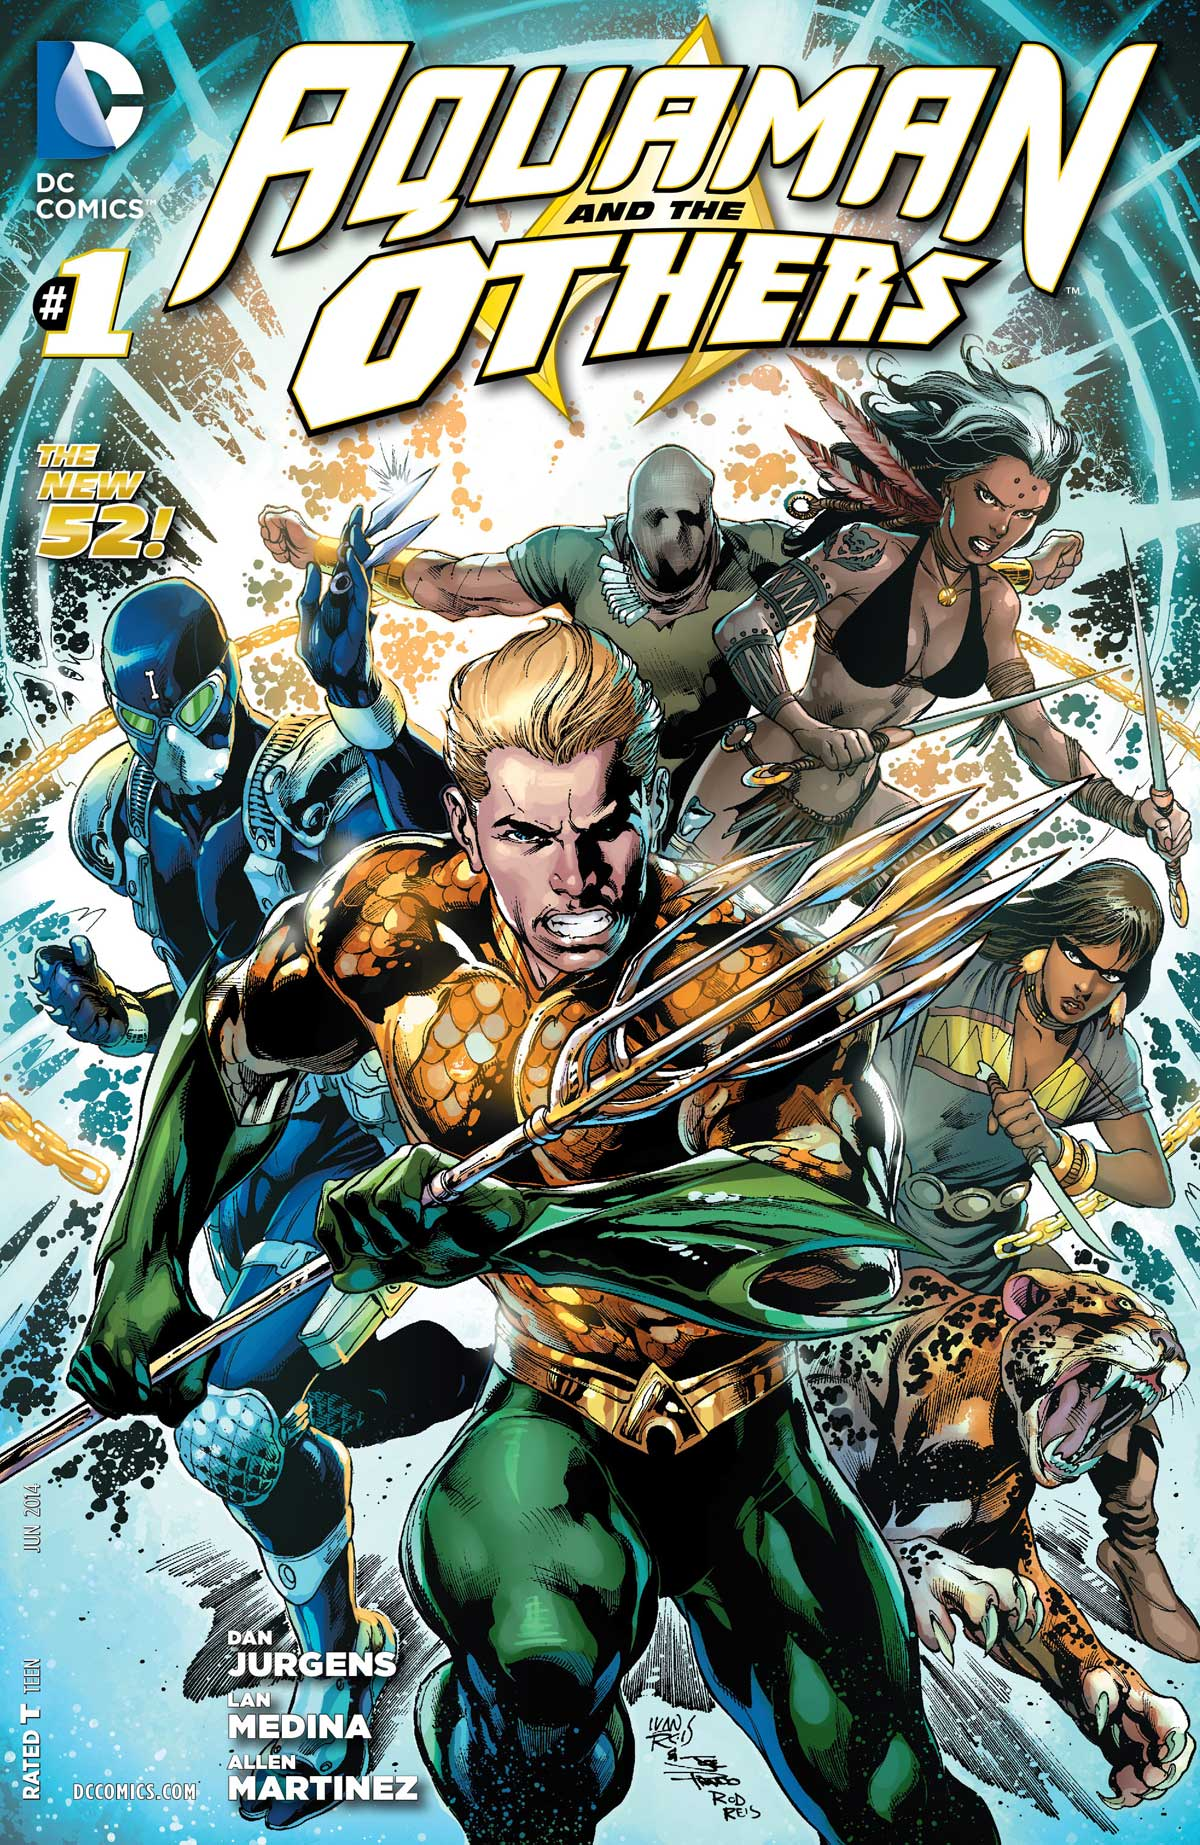 Aquaman & The Others #1 cover by Ivan Reis, Joe Prado, and Rod Reis